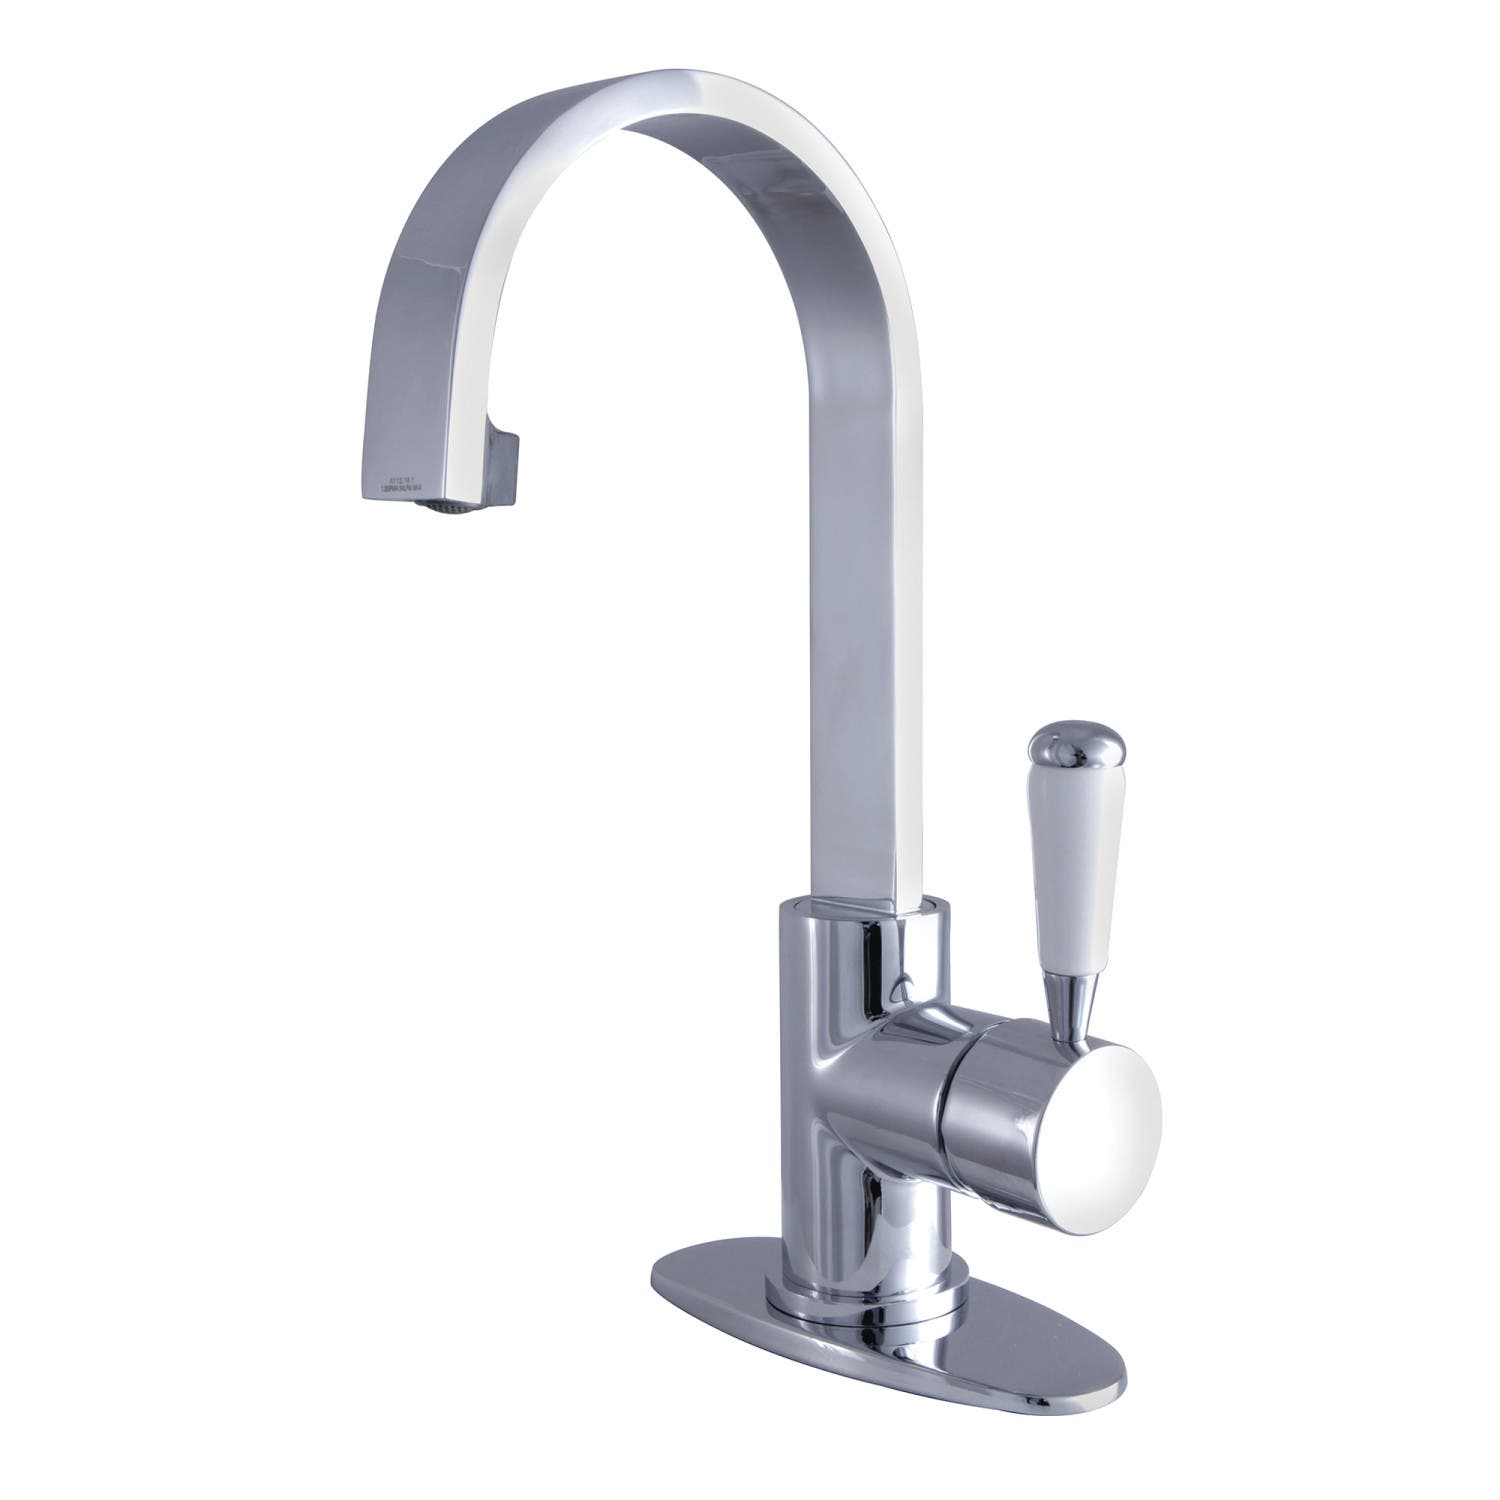 Fauceture Ls8211dpl Paris Single Handle Bathroom Faucet With Deck